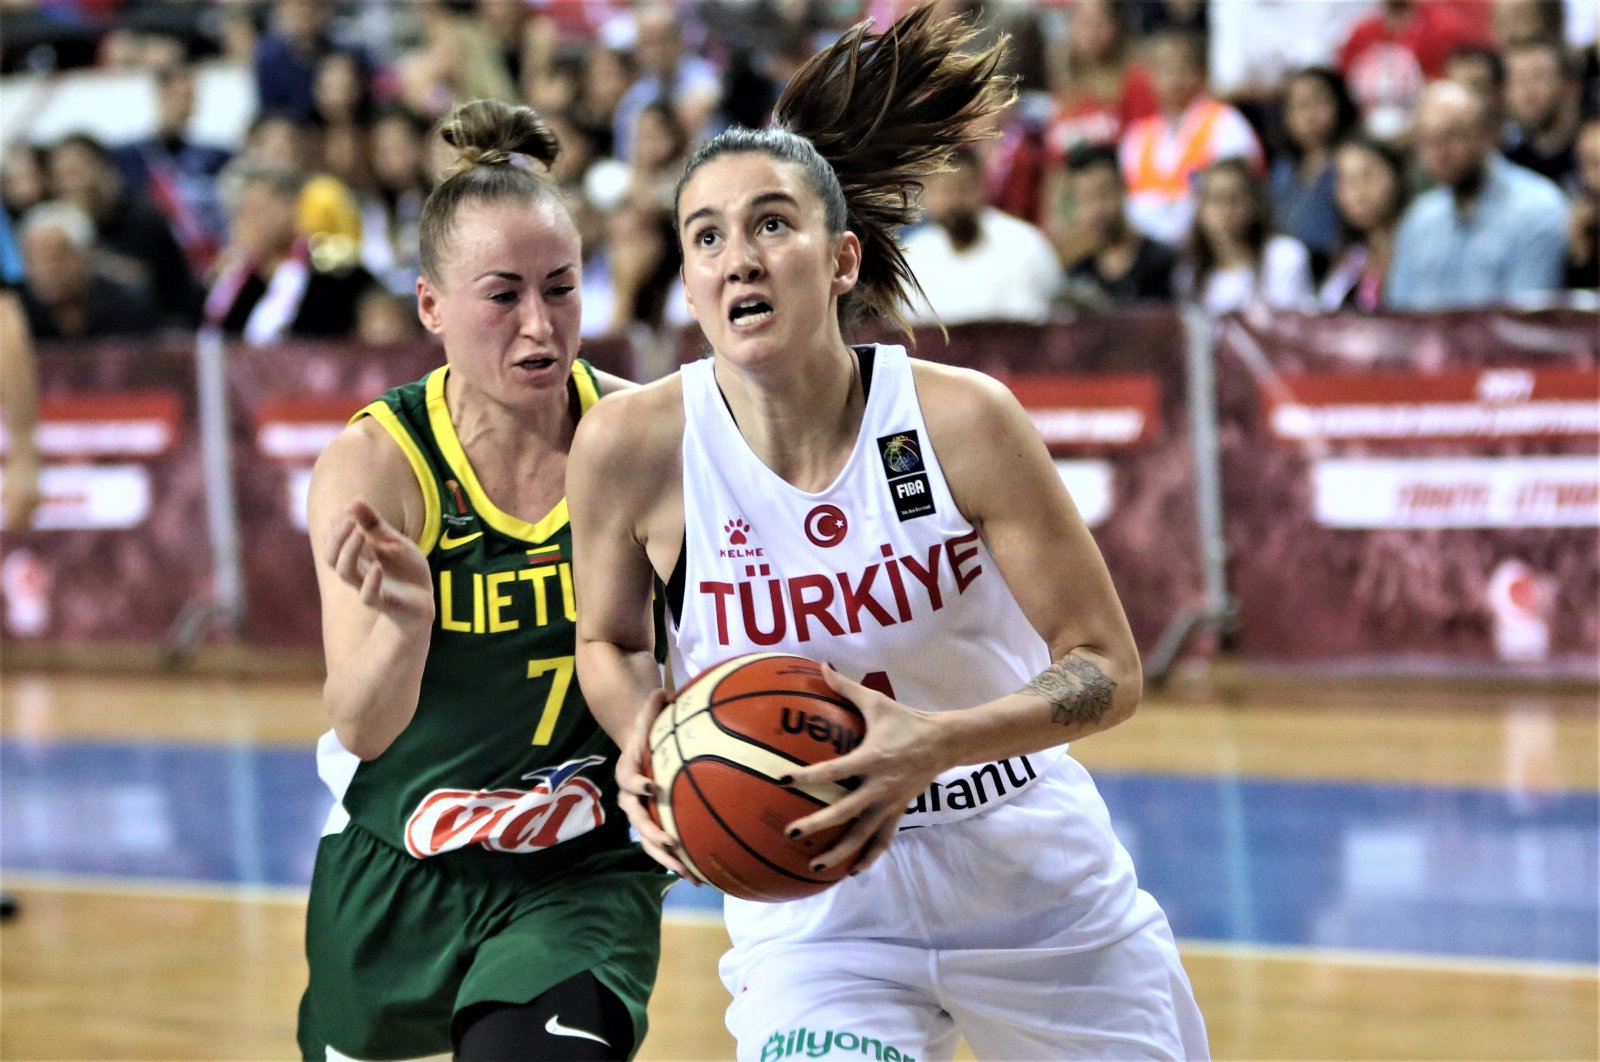 Olcay Çakır of Turkey (R) grabs the ball in a match against Lithuania in the 2021 qualifiers, in Mersin, southern Turkey, Nov. 17, 2019. (AA Photo)